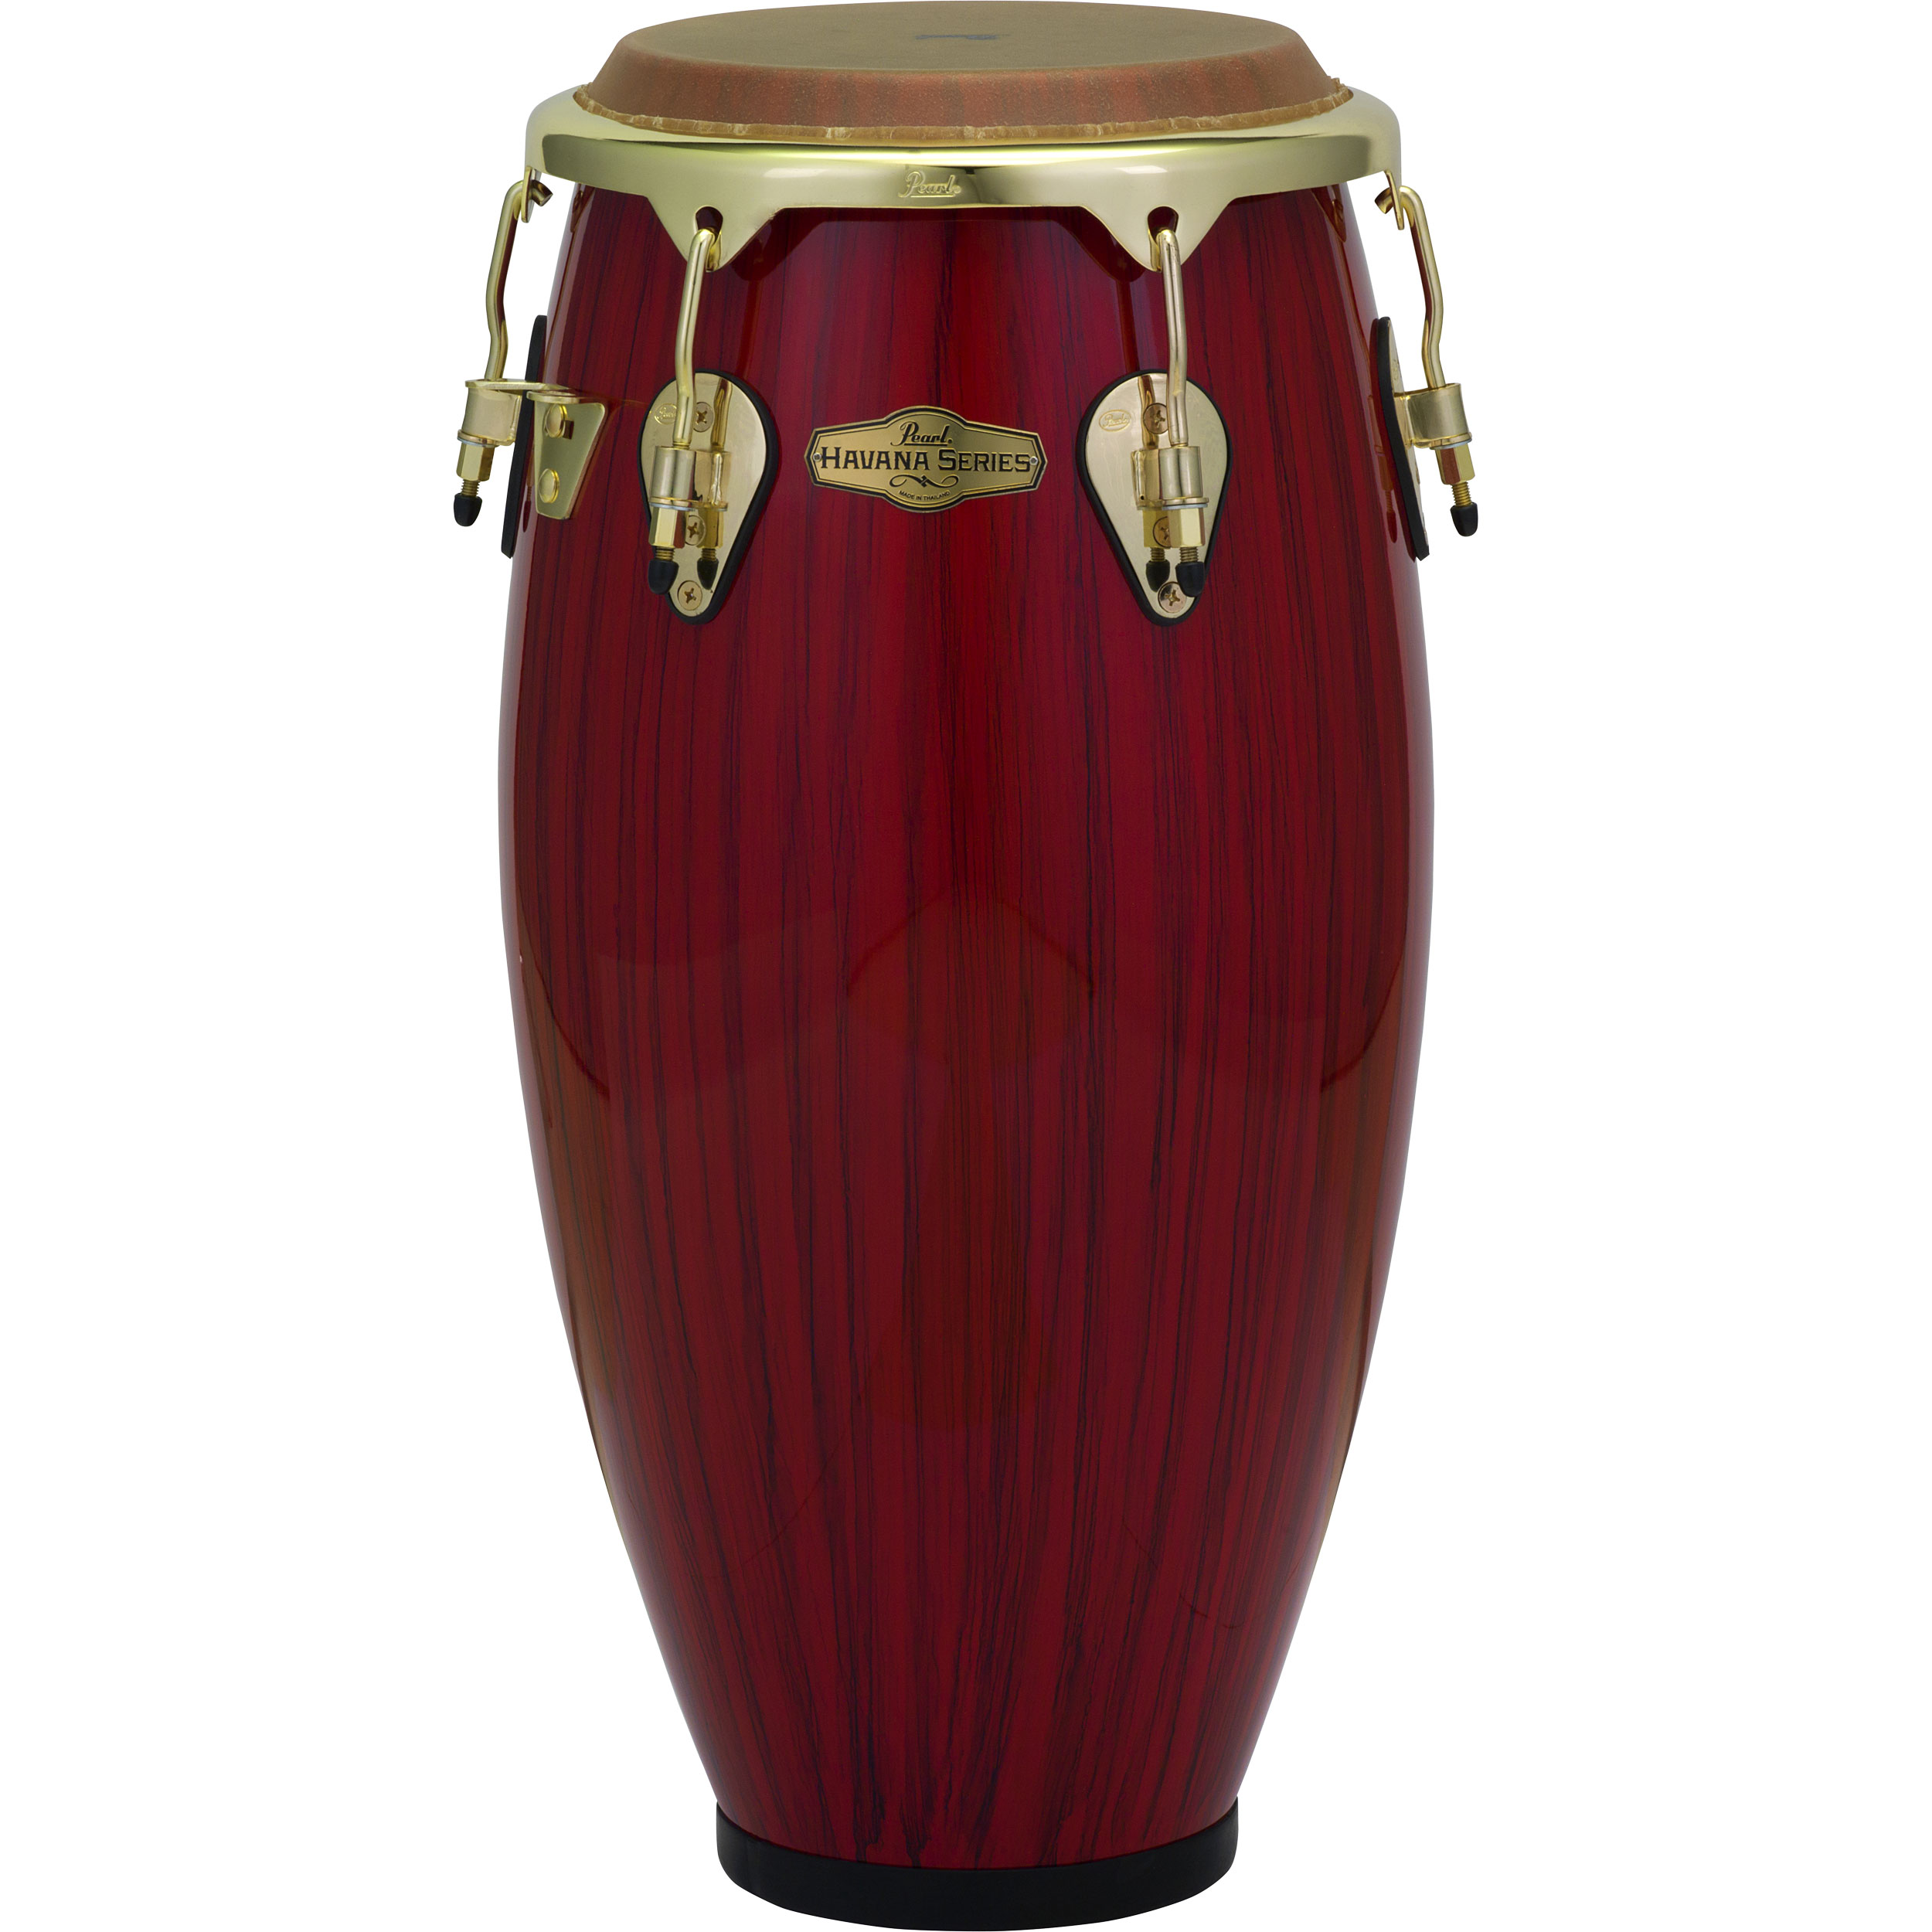 "Pearl 11.75"" Havana Series Fiberglass Conga in Red Tiger Stripe with Gold Hardware"